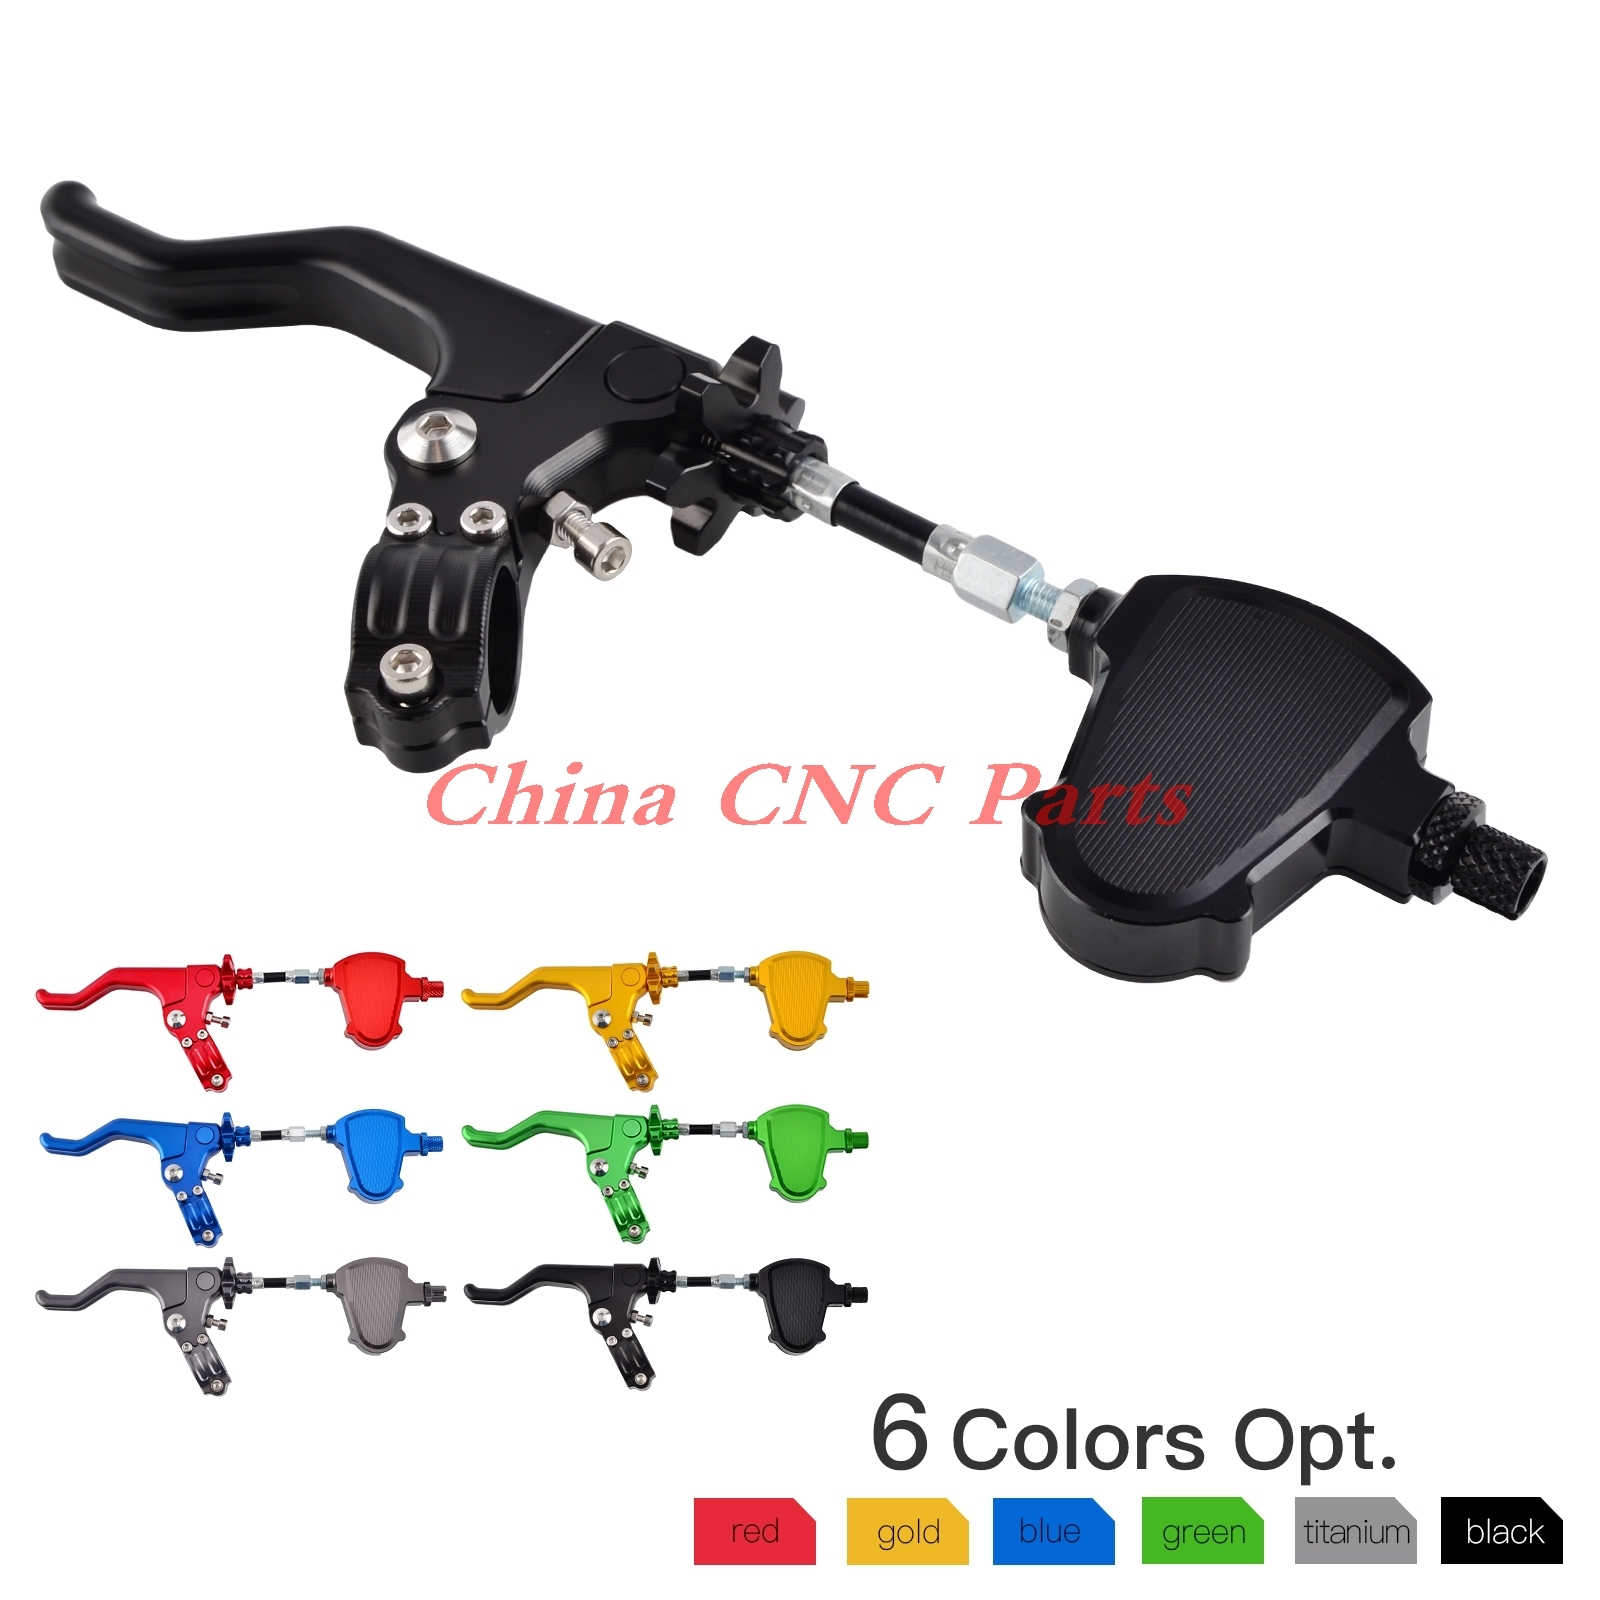 NICECNC Stunt Clutch Pull Cable Lever Replacement Easy System For Honda Kawasaki Suzuki Yamaha Ducati Buell Triumph Street/Sport 22mm 7 8 handlebar cnc short stunt clutch lever perch assembly for honda suzuki yamaha kawasaki triumph